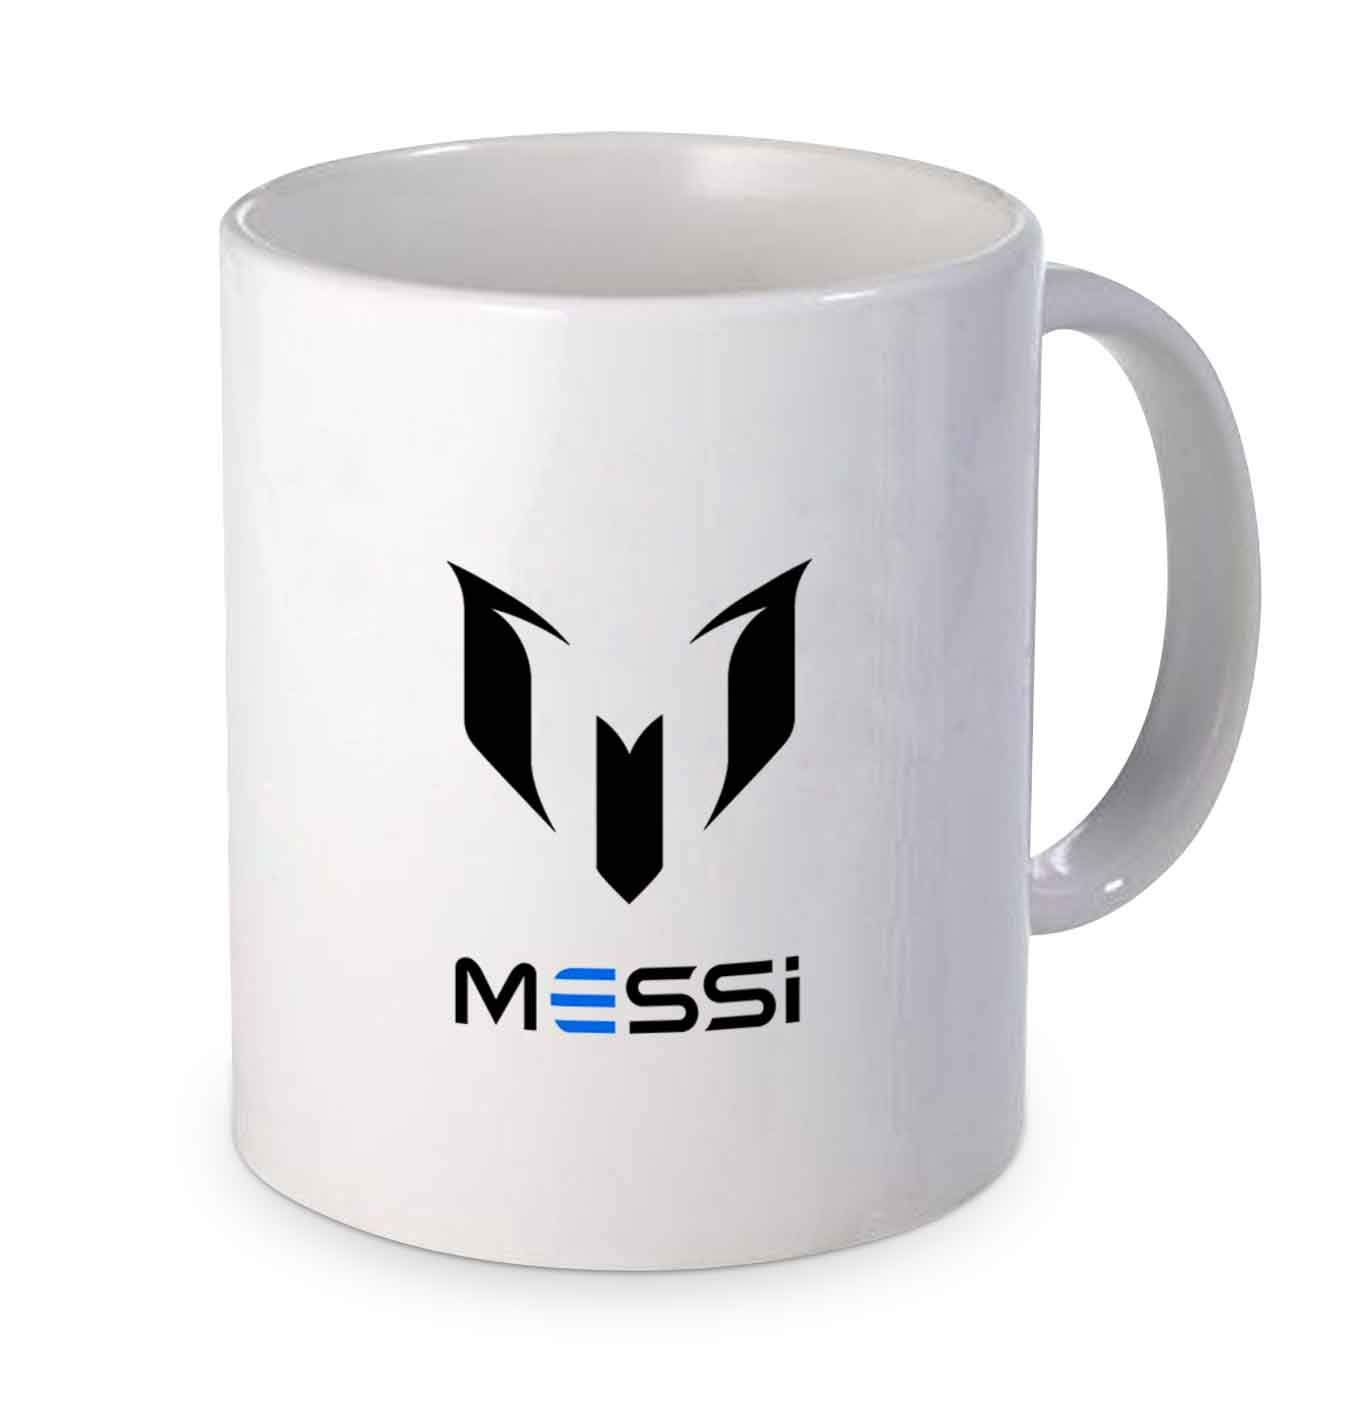 Buy Inklusiv Lionel Messi Logo Black White Ceramic Printed Coffee Mug 330ml Online At Low Prices In India Amazon In